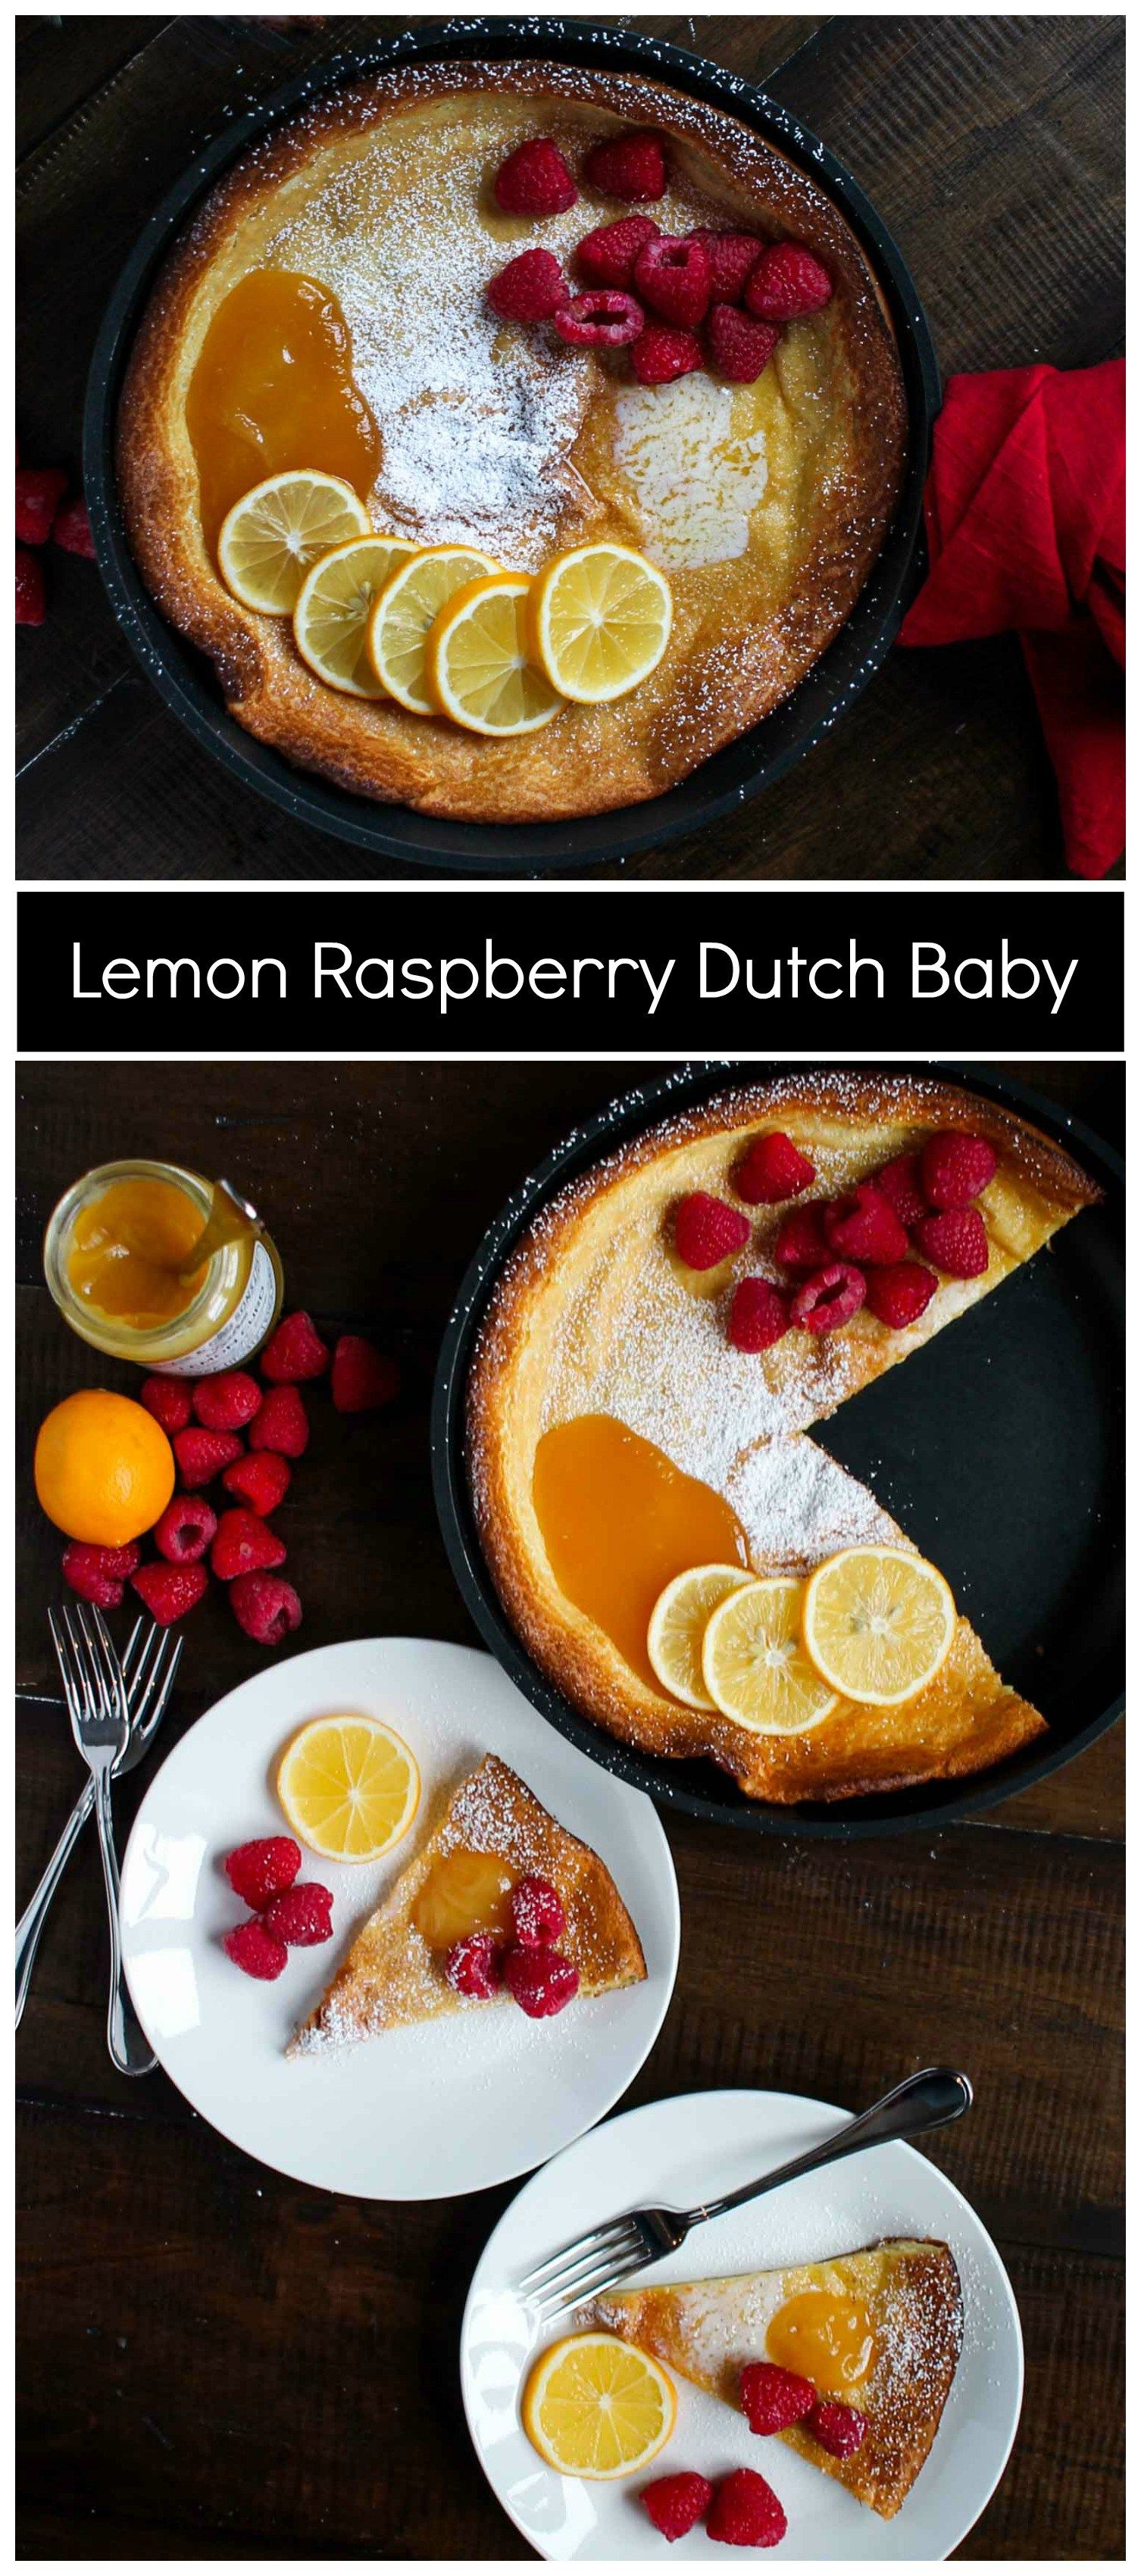 A Lemon Raspberry Dutch Baby is the easiest brunch recipe! It is elegant and takes just 5 minutes of active preparation time. Get the recipe here.